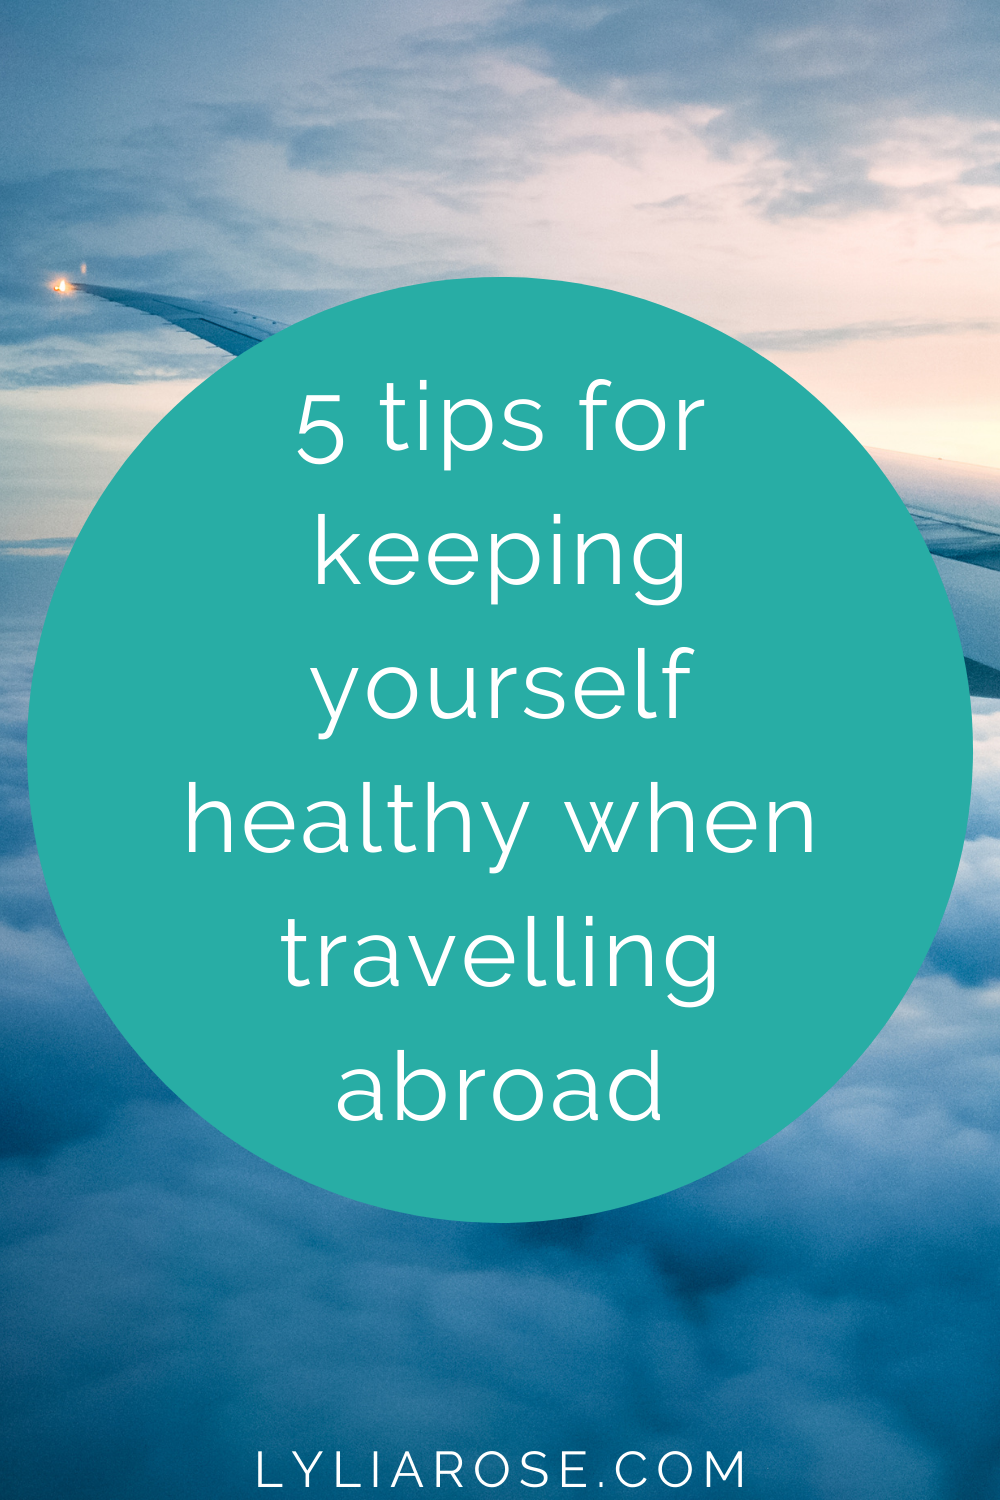 5 tips for keeping yourself healthy when travelling abroad